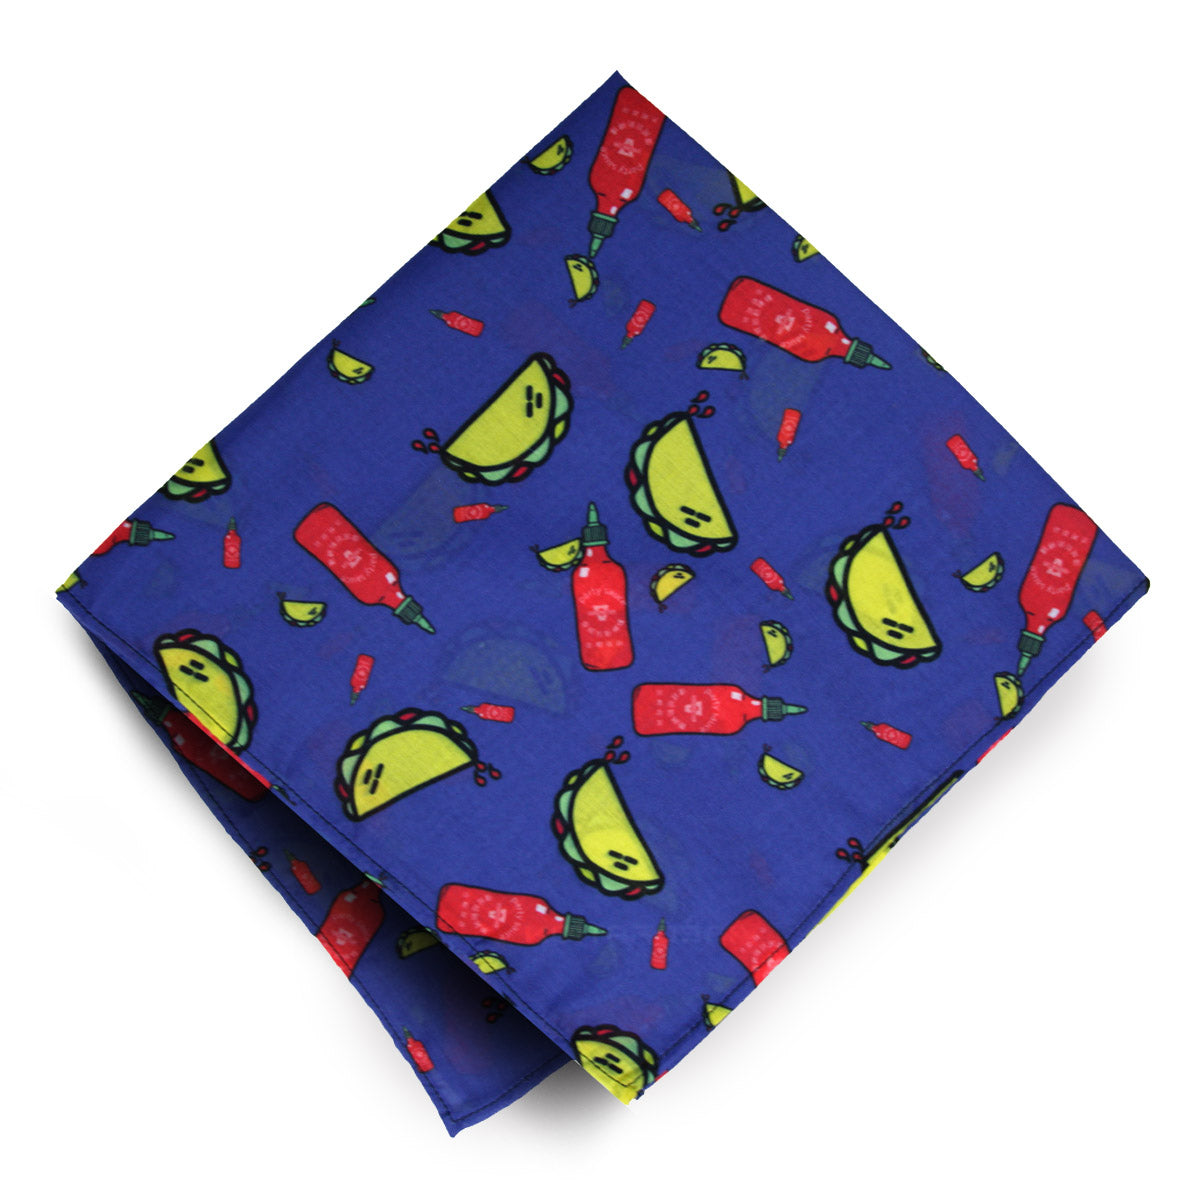 Blue Taco Bandana for Music Festivals